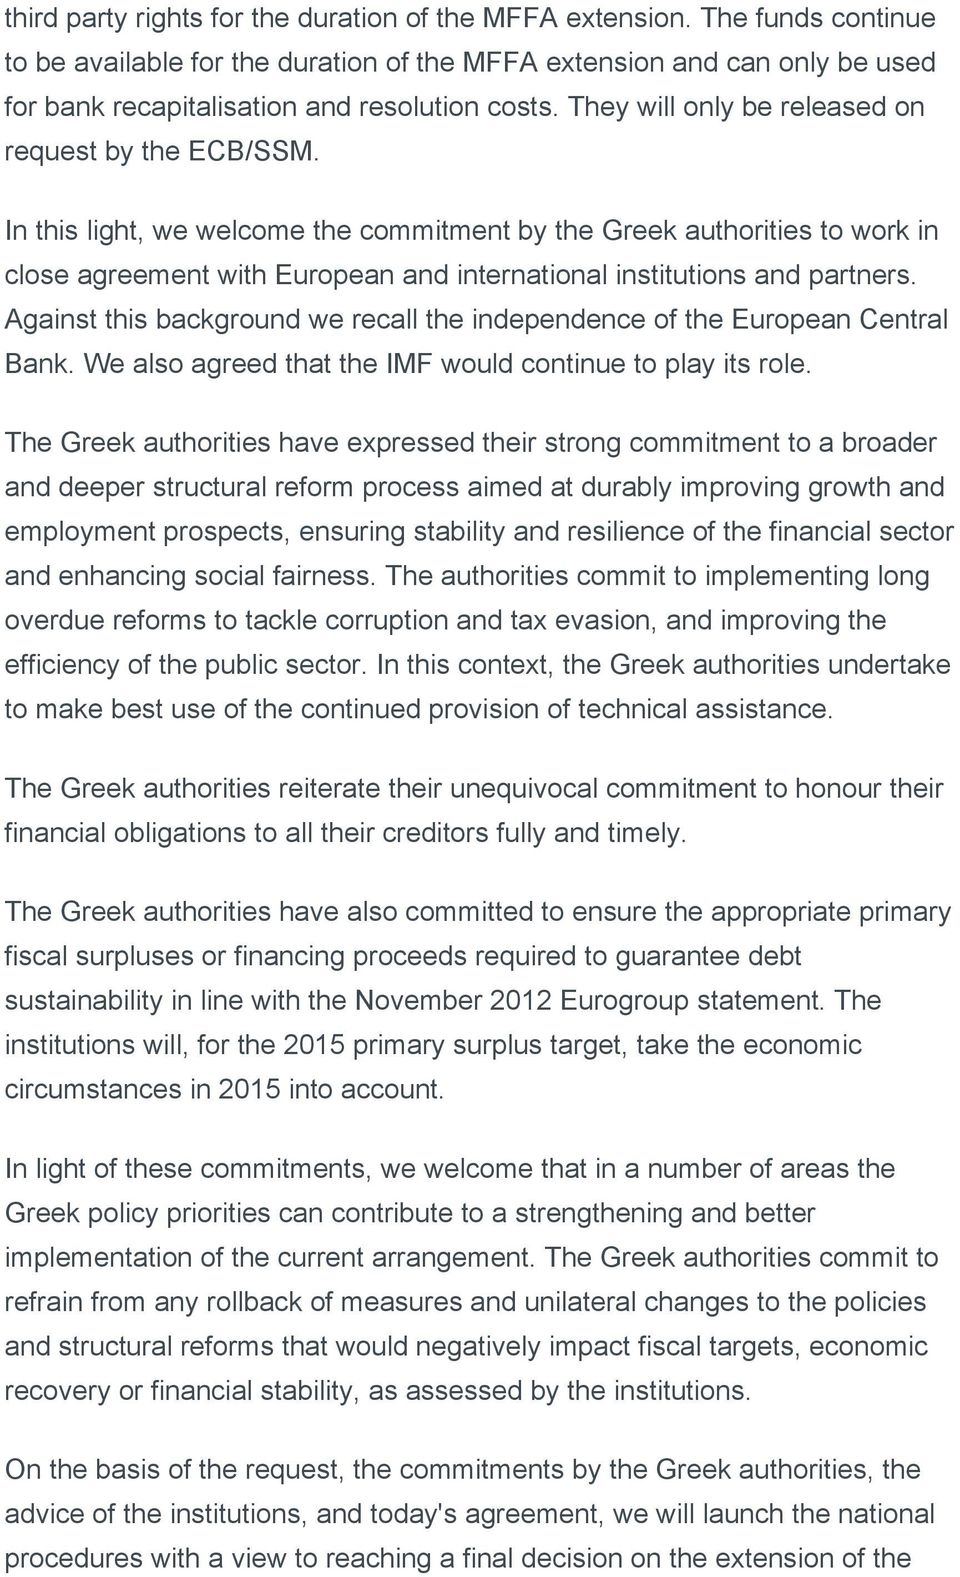 In this light, we welcome the commitment by the Greek authorities to work in close agreement with European and international institutions and partners.